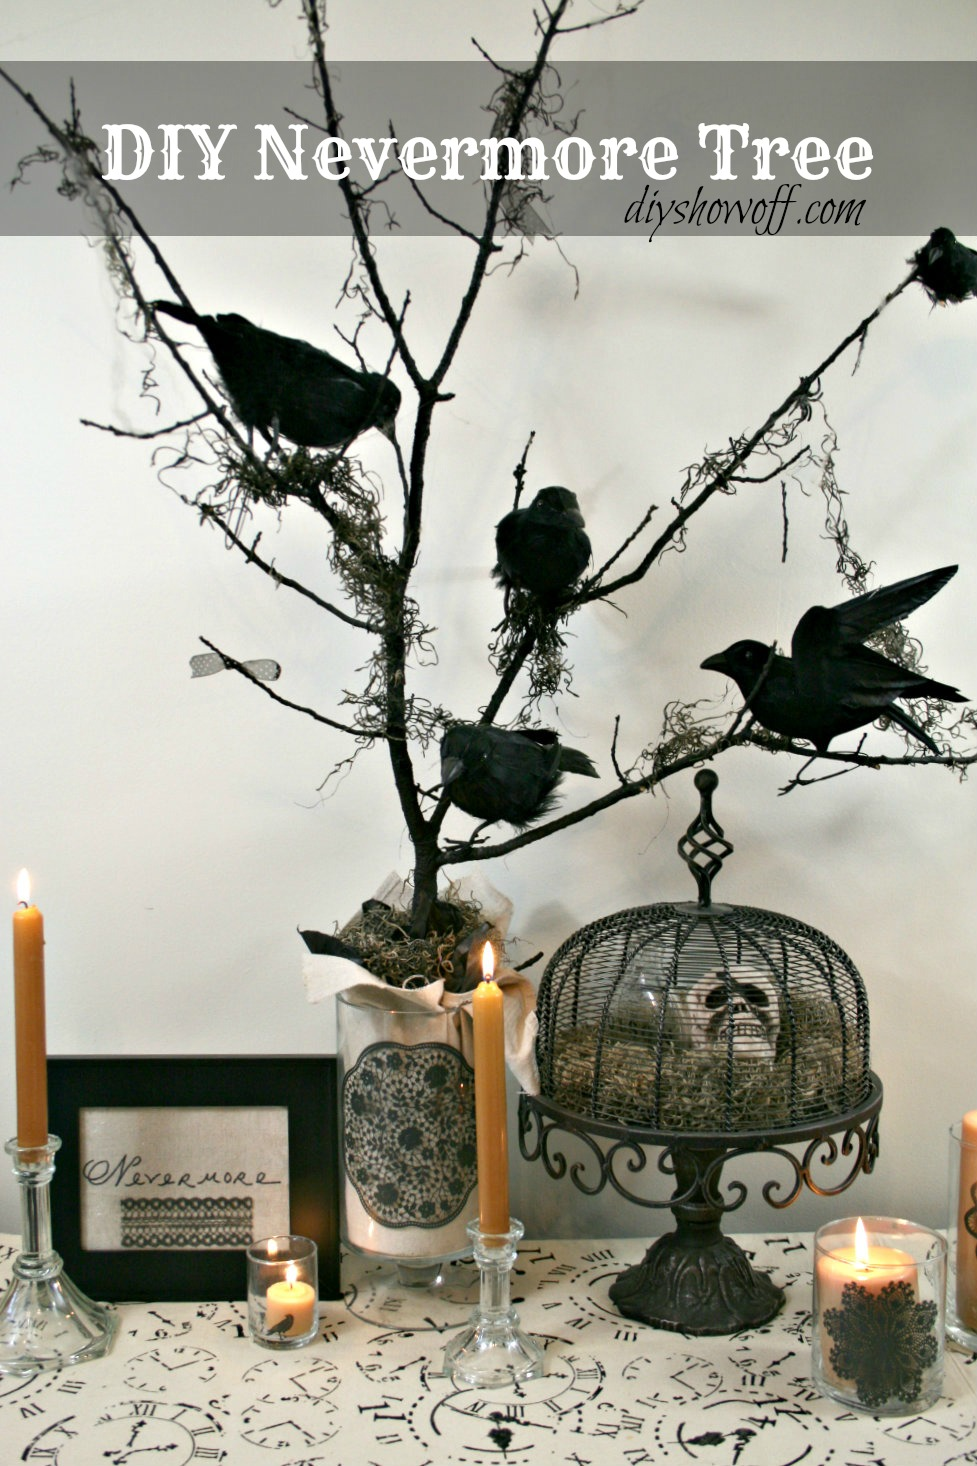 diy halloween decor ideas twenty halloween mantel and more decorating ideas fox hollow - Diy Halloween